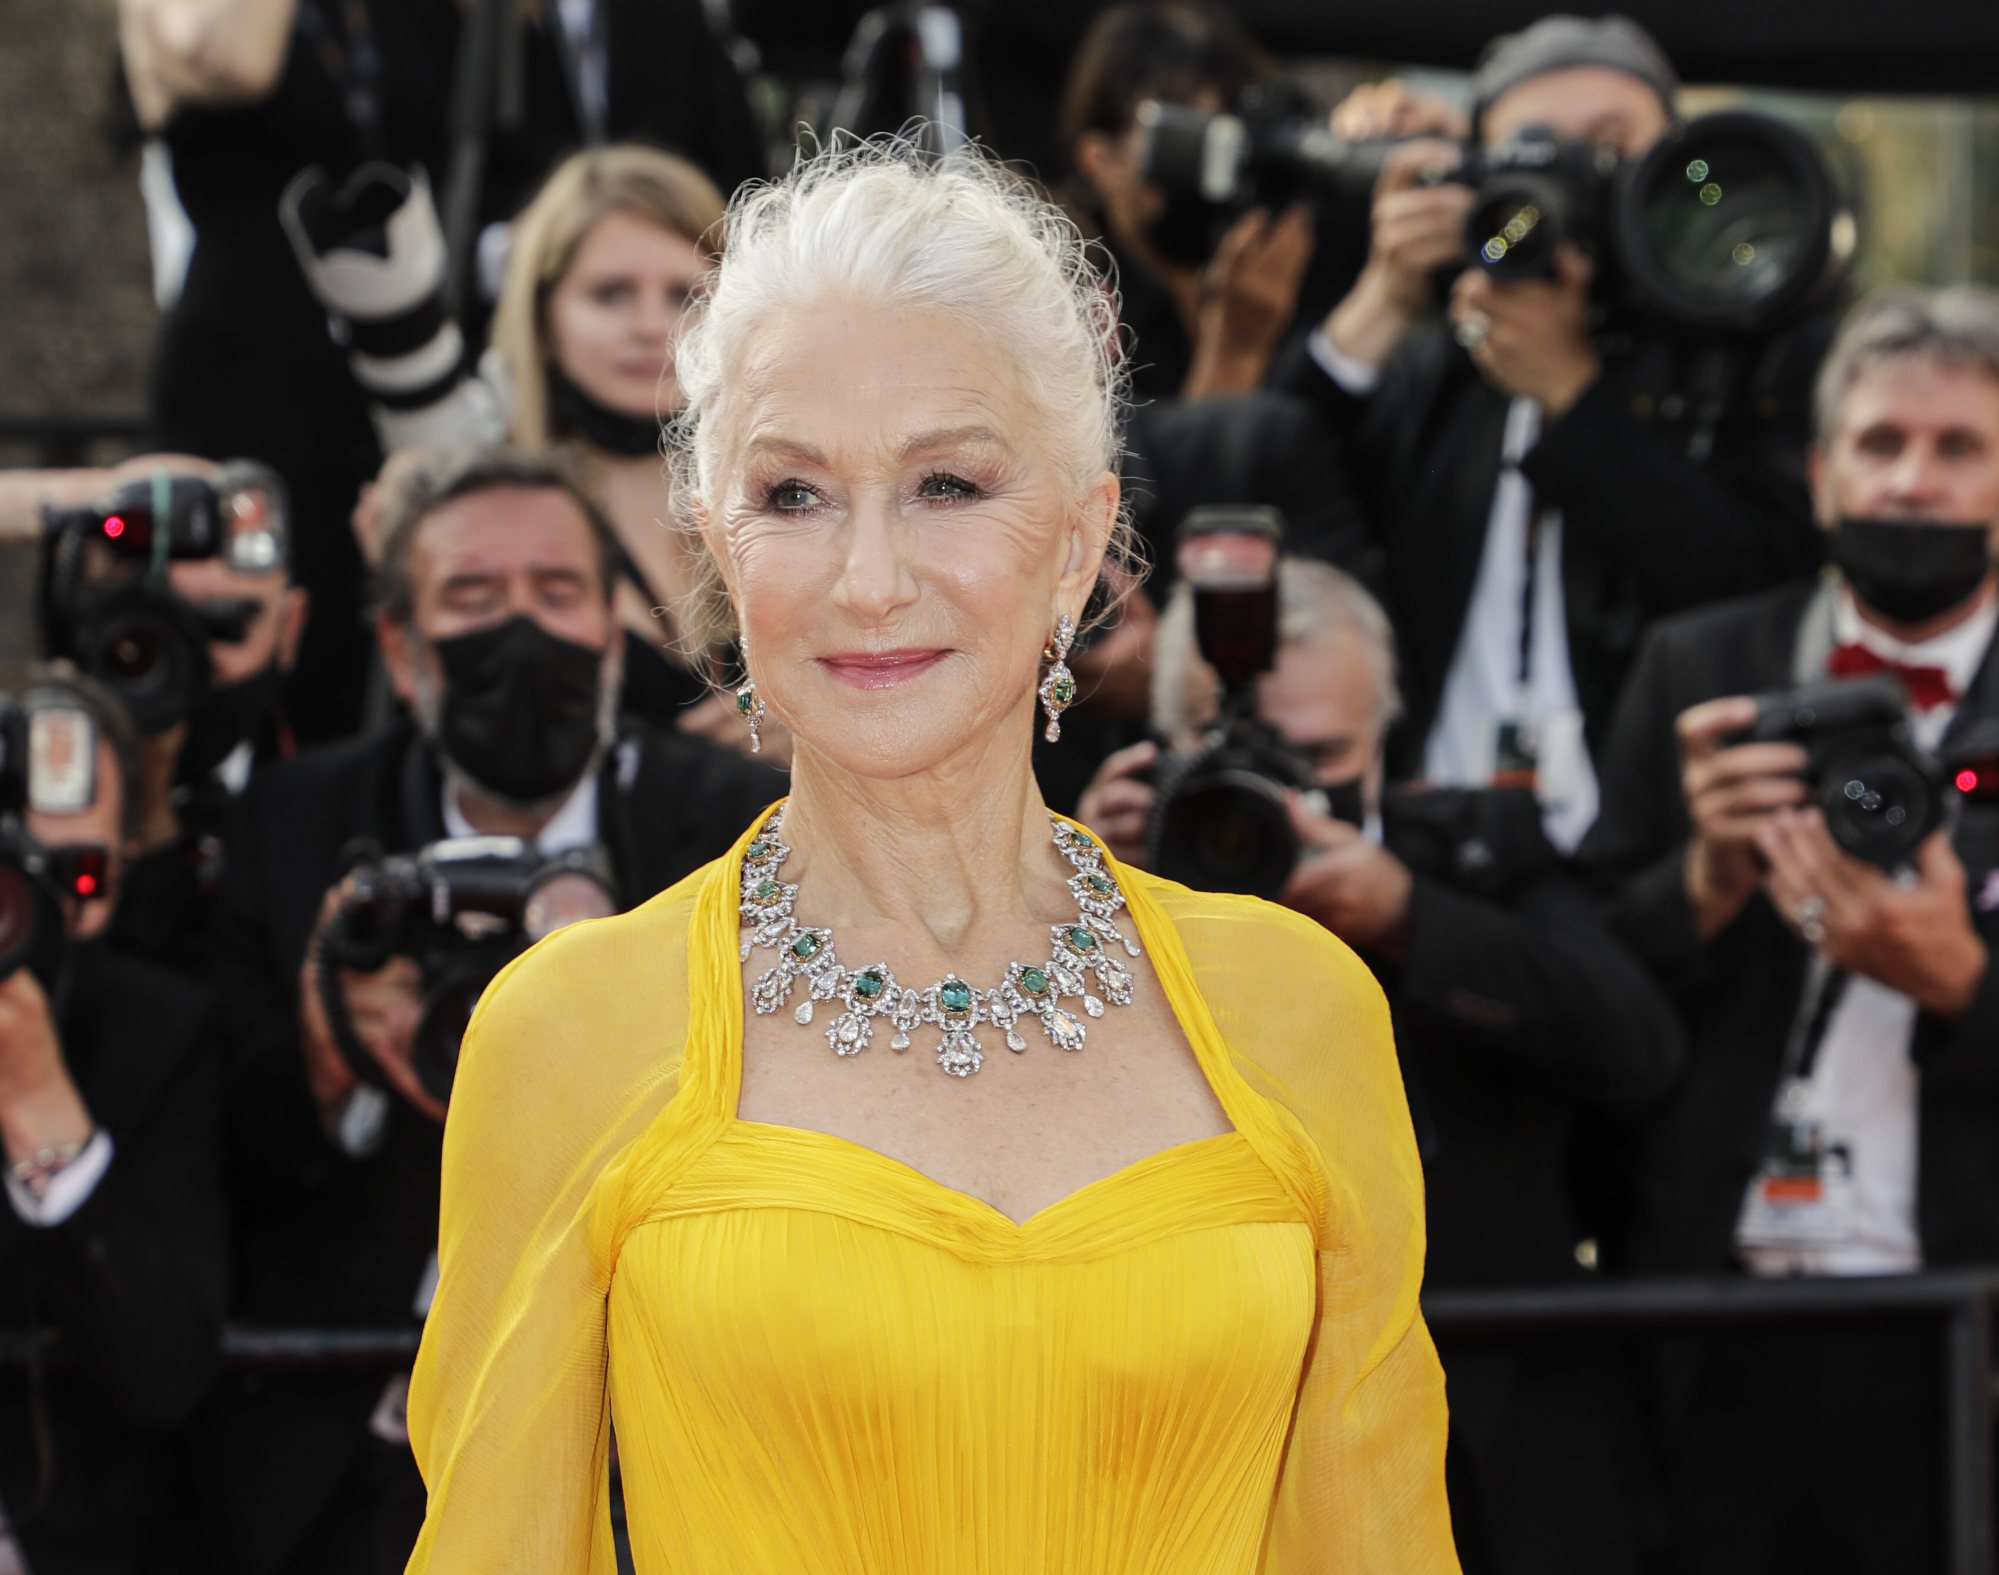 Helen Mirren poses for photographers upon arrival at the premiere of the film Annette and the opening ceremony of the 74th international film festival in Cannes, France on July 6, 2021. Photo: Invision/AP